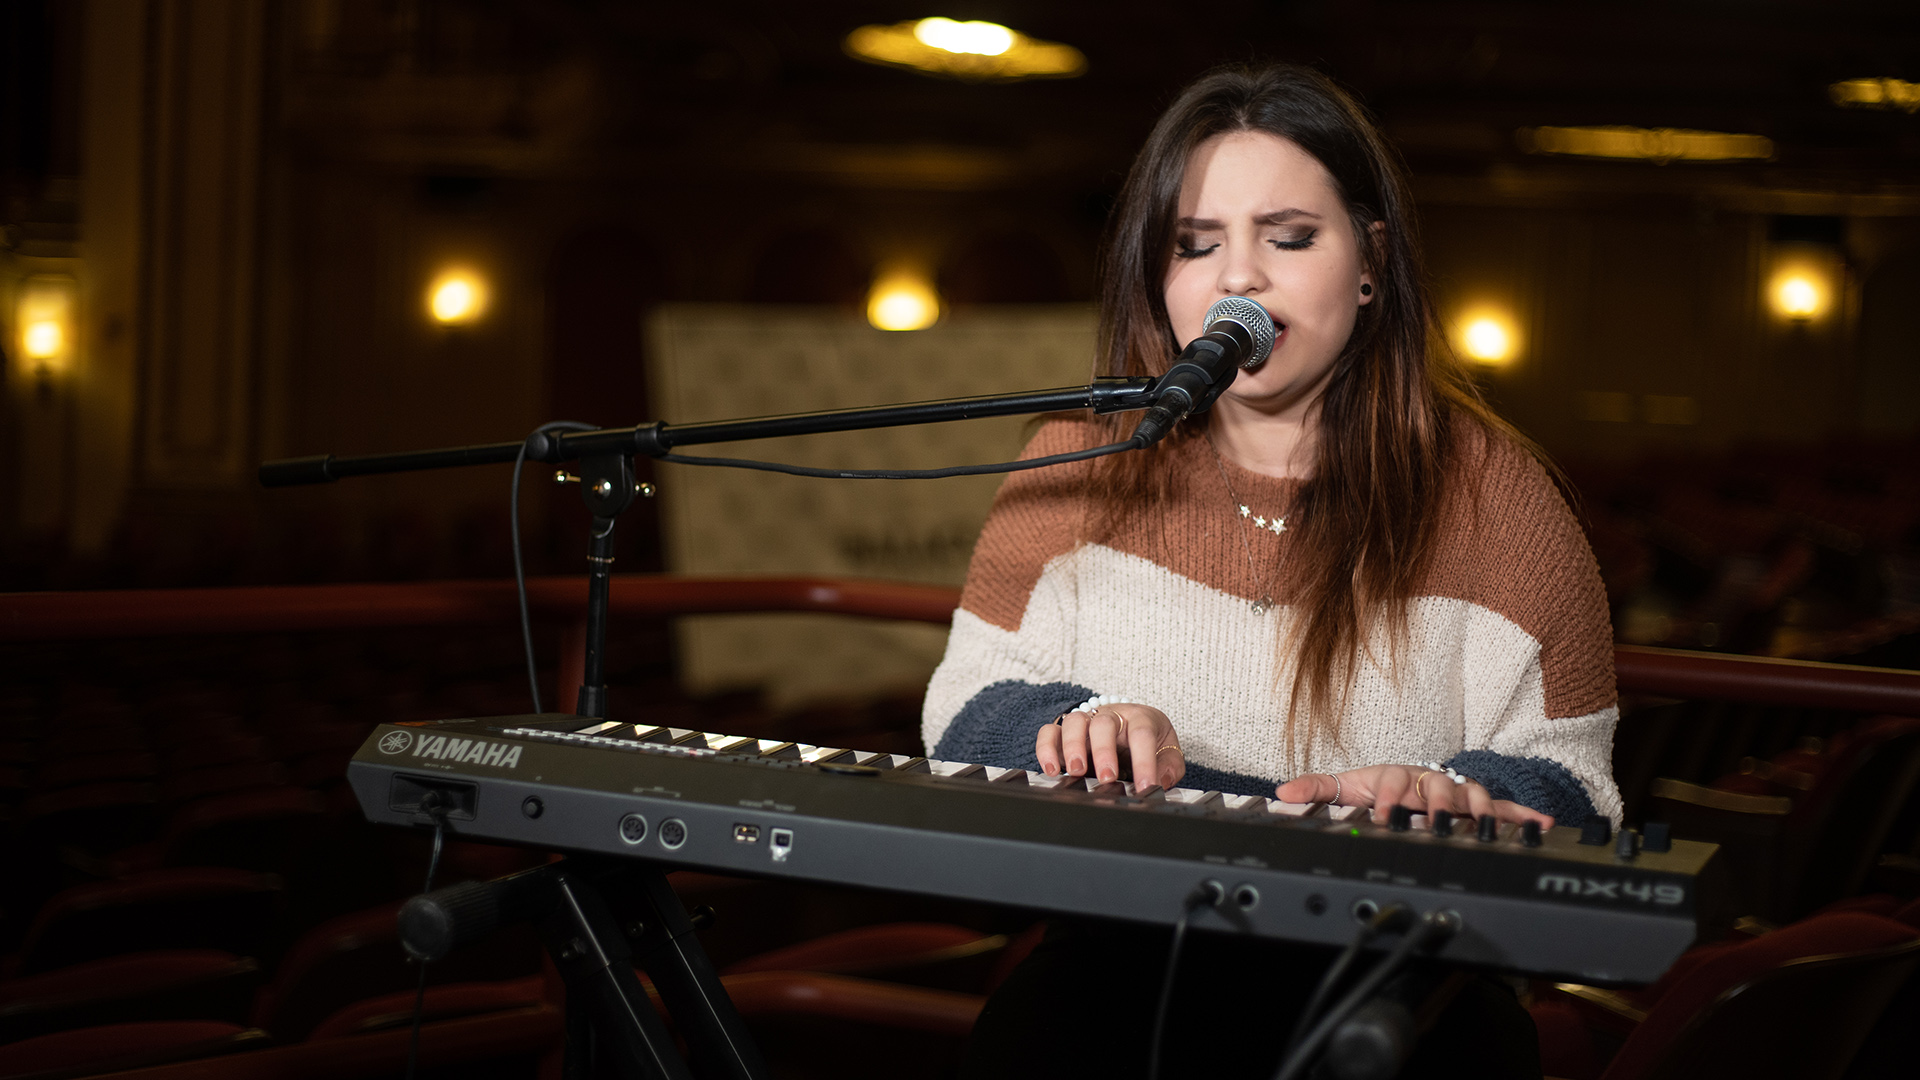 """VIDEO: Madison VanDenburg Performs """"For You"""" Live at the Palace Theatre in Albany, NY"""